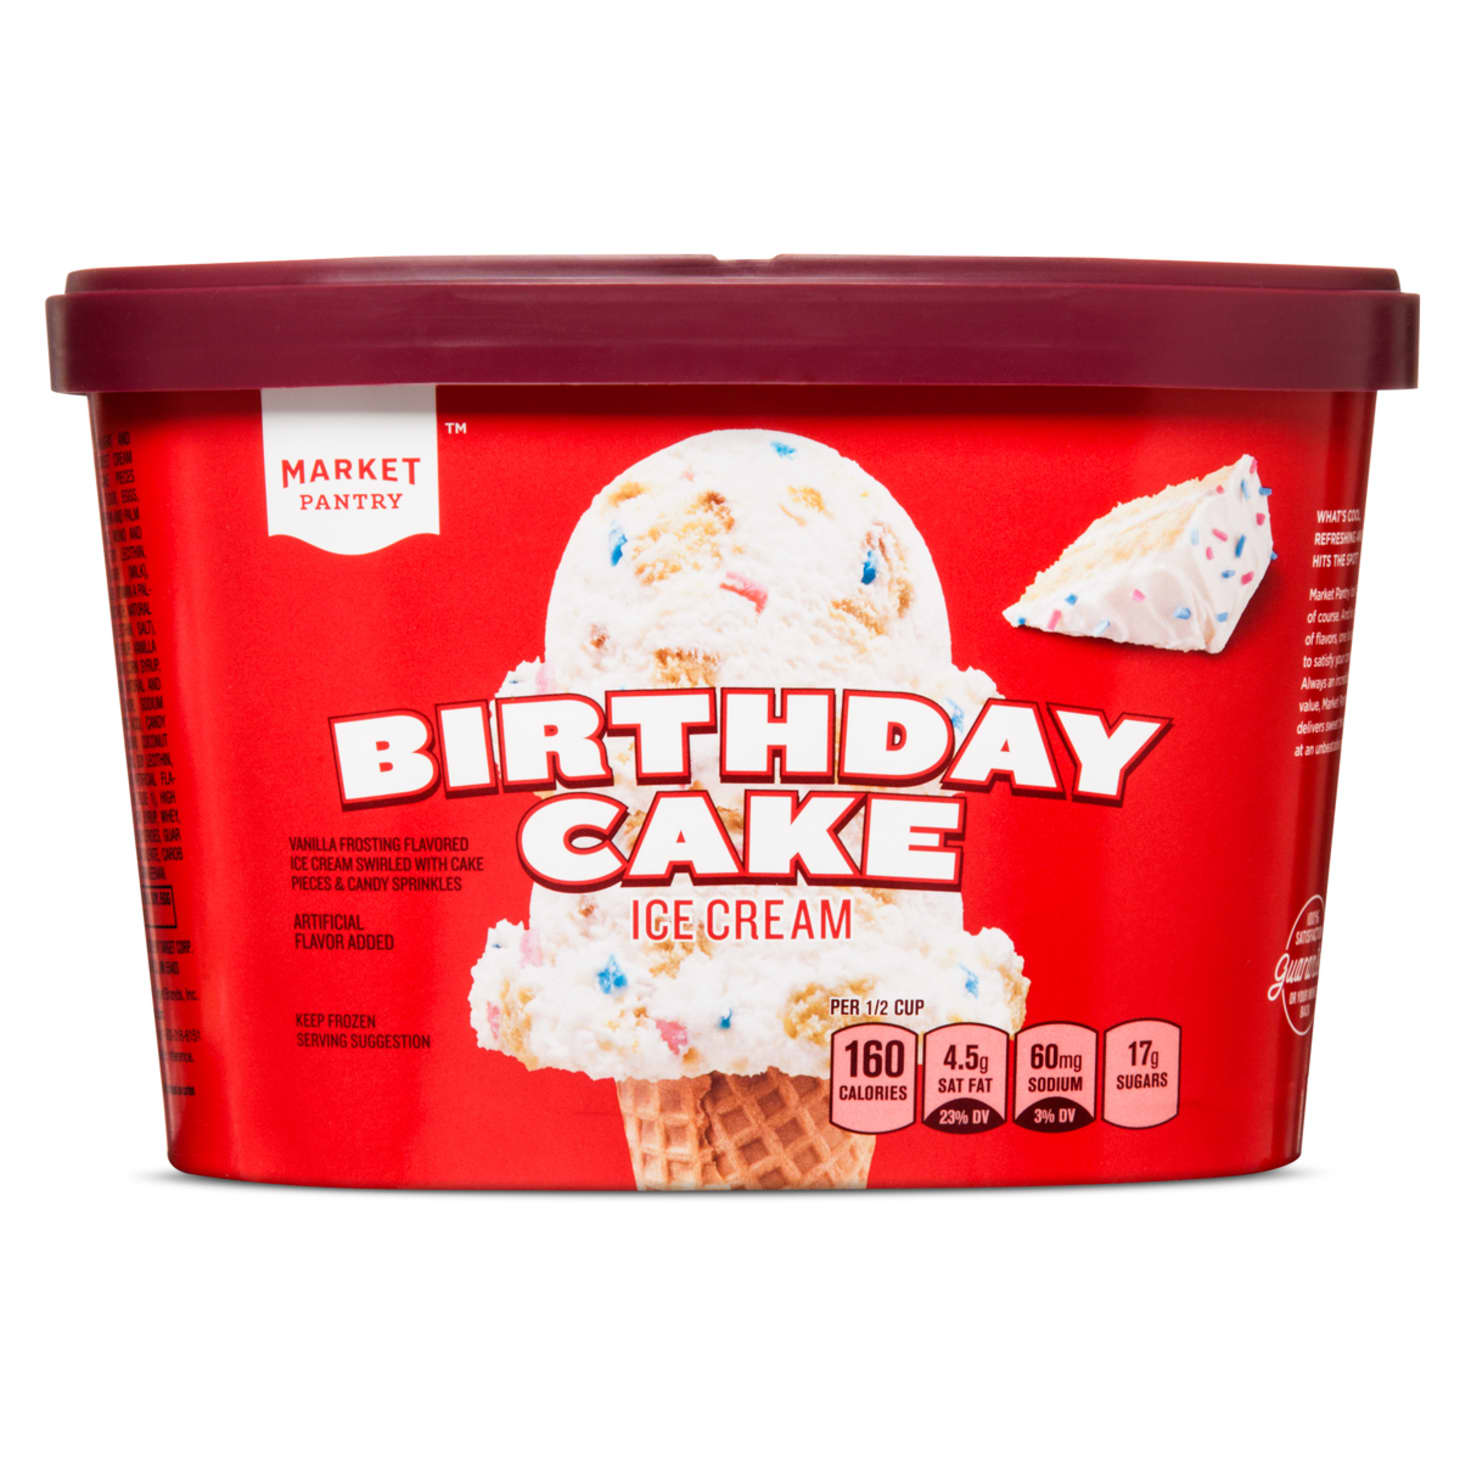 Swell Best Ice Cream At Target Market Pantry Kitchn Funny Birthday Cards Online Aboleapandamsfinfo